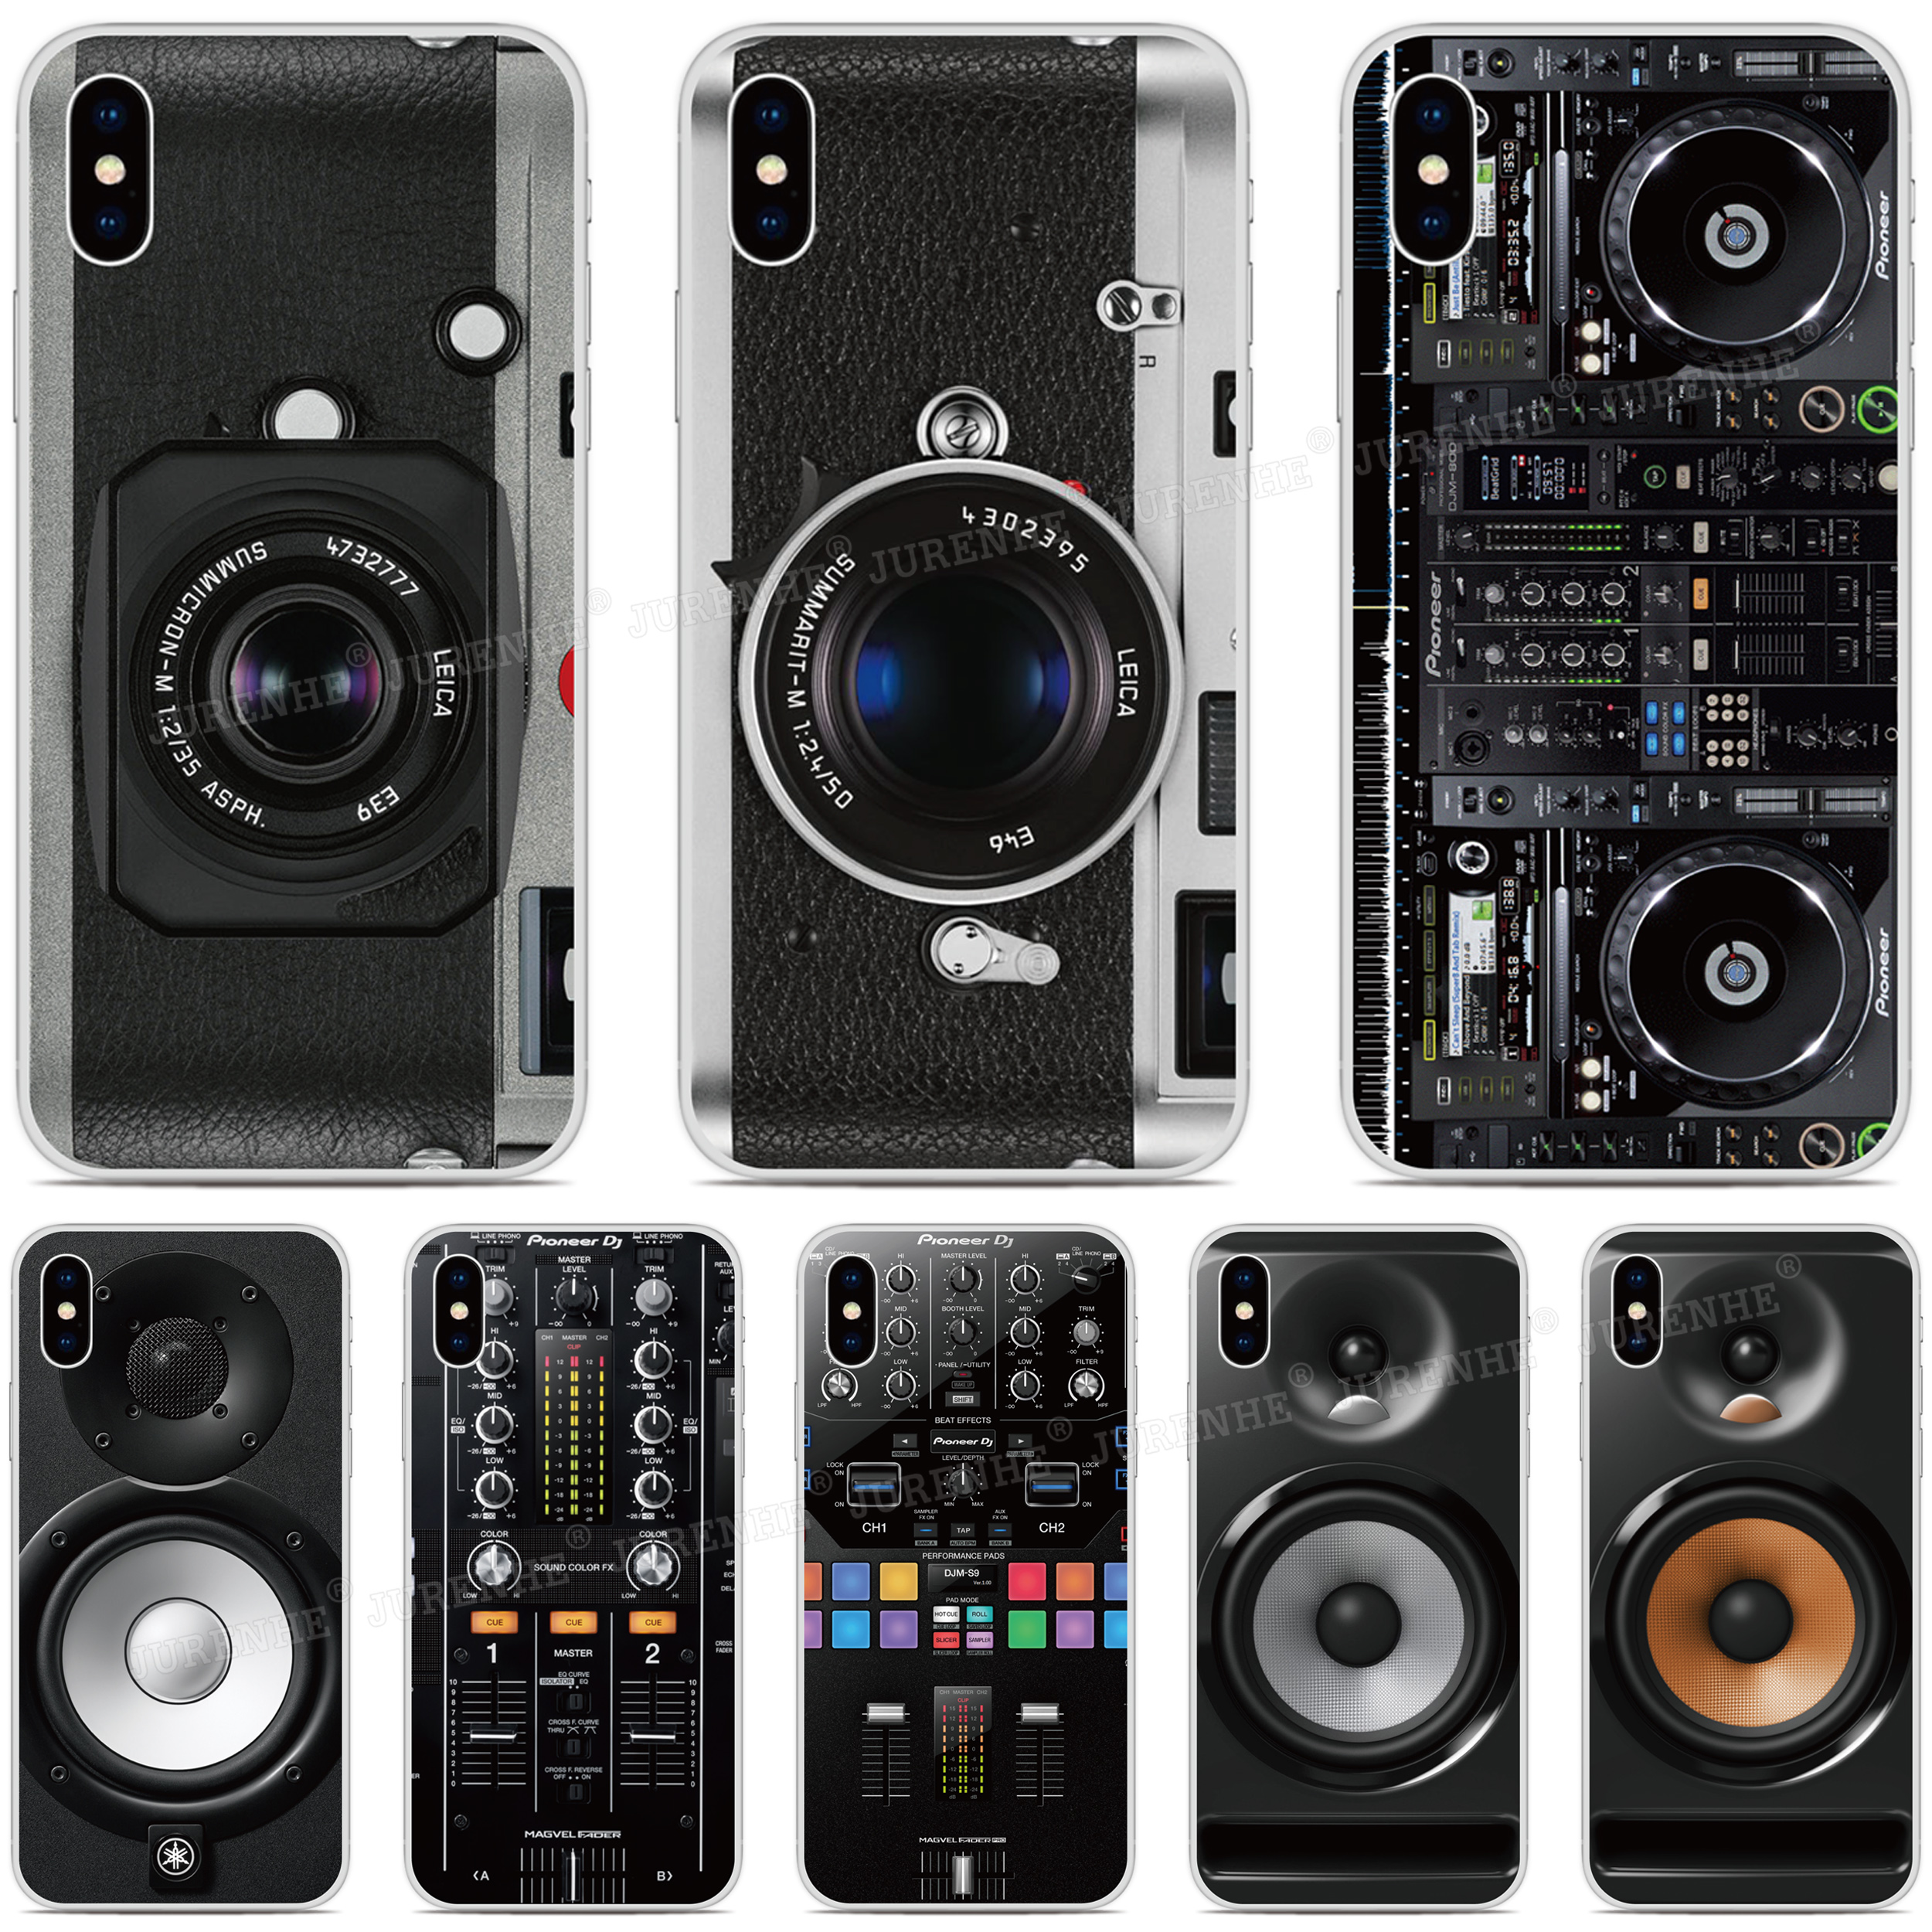 Rubber Soft TPU Camera Speaker Pattern Phone Case For <font><b>Oukitel</b></font> C17 C16 <font><b>C15</b></font> C13 C12 C18 <font><b>Pro</b></font> K9 U25 <font><b>Pro</b></font> U22 Fundas Silicone <font><b>Cover</b></font> image